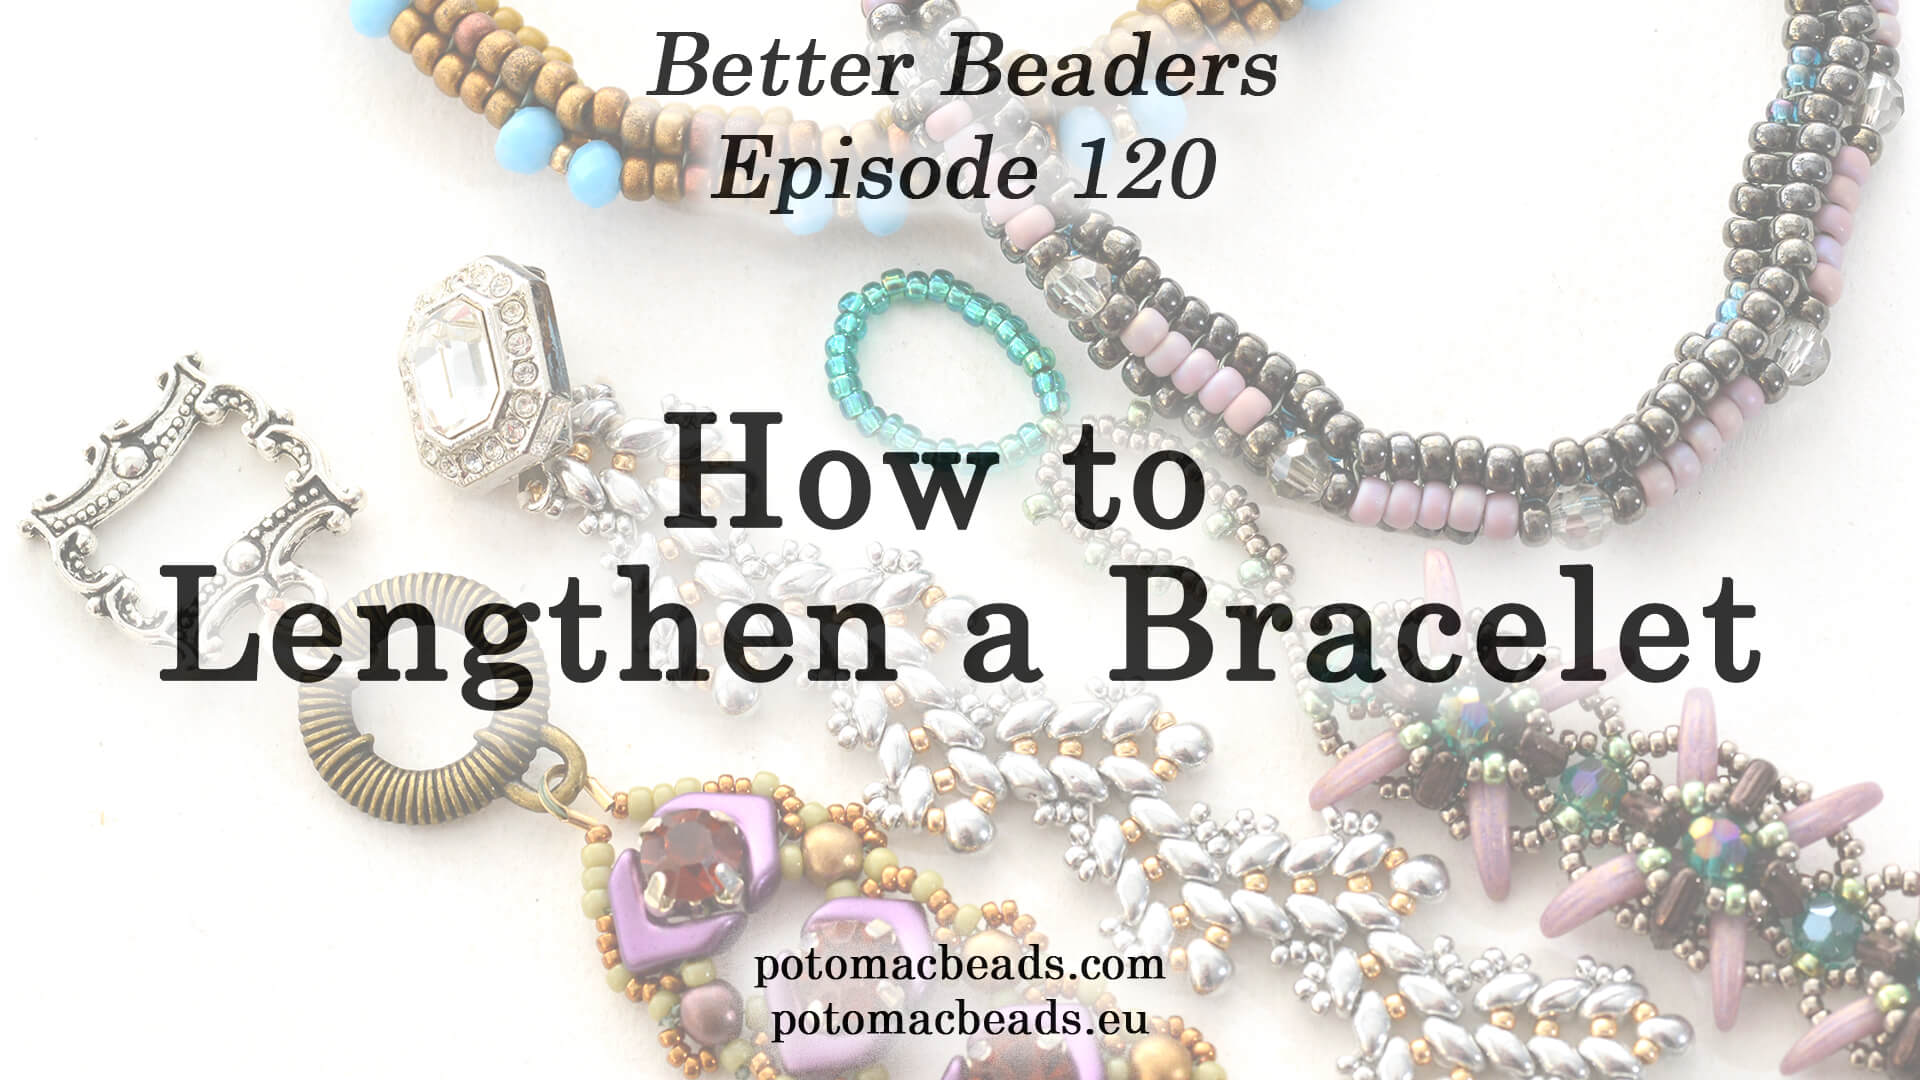 How to Bead Jewelry / Better Beader Episodes / Better Beader Episode 120 - How to Lengthen a Bracelet